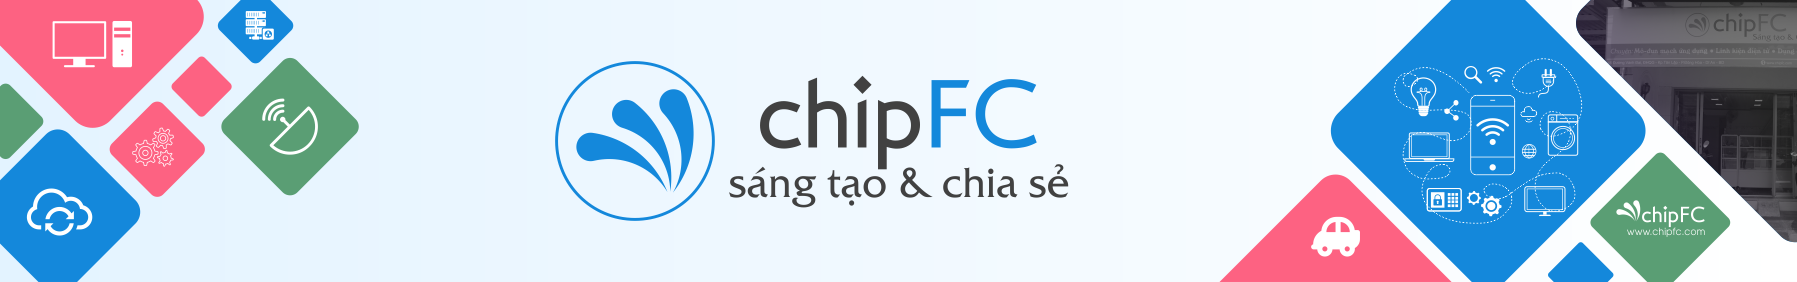 Wiki chipfc banner 2.png